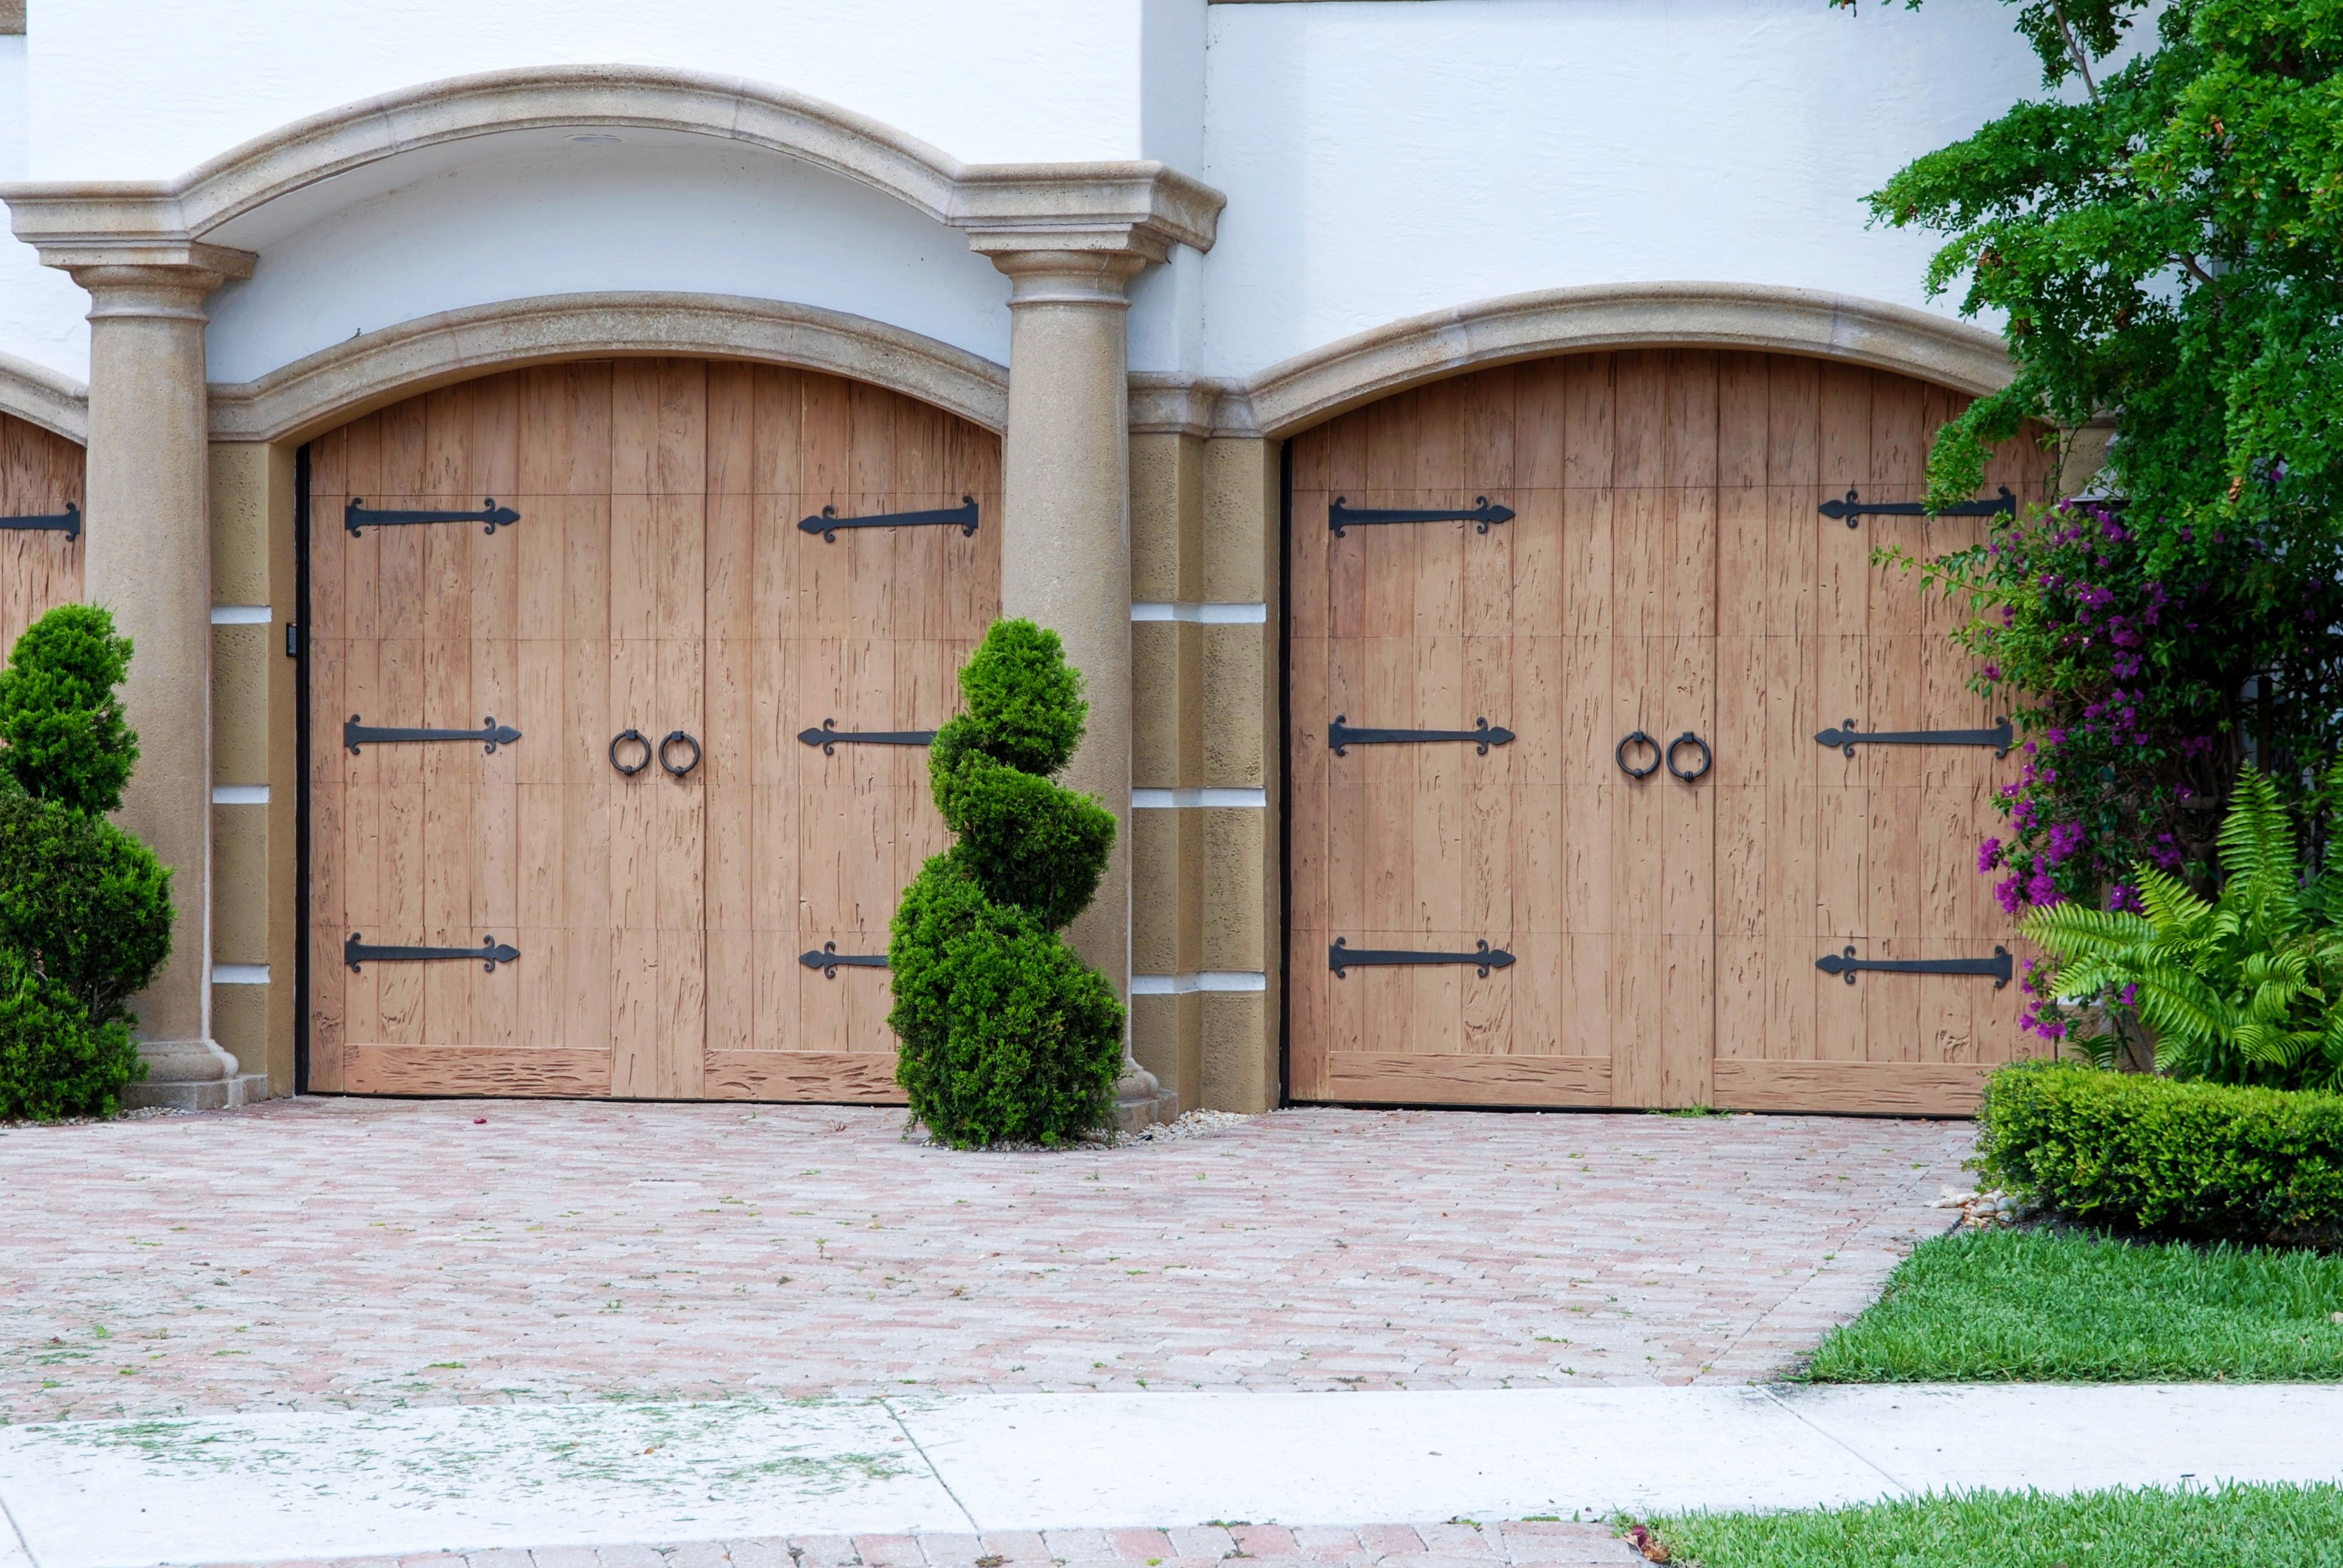 Pecky Cypress Classica Series Model 200 With Ring Pull Tuscan Hardware Fatezzi Fauxwood Garagedoo Garage Doors For Sale Faux Wood Garage Door Garage Doors